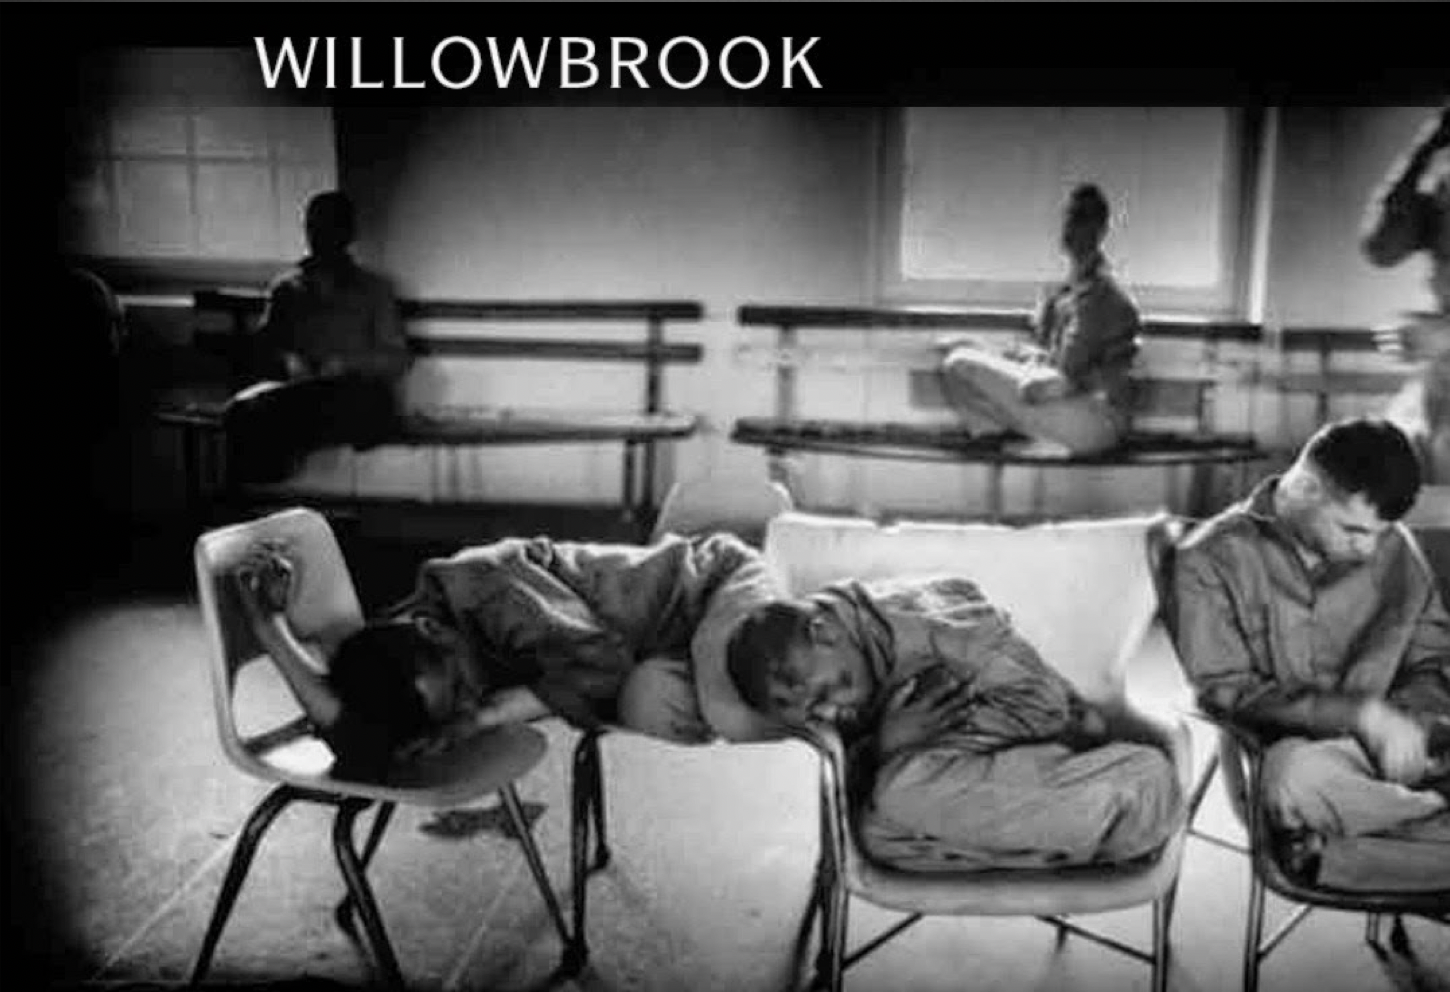 Black and white photograph of five residents in Willowbrook. Two are in the background sitting near windows. Three are in the foreground and look to be attempting to sleep on chairs in a barren room.